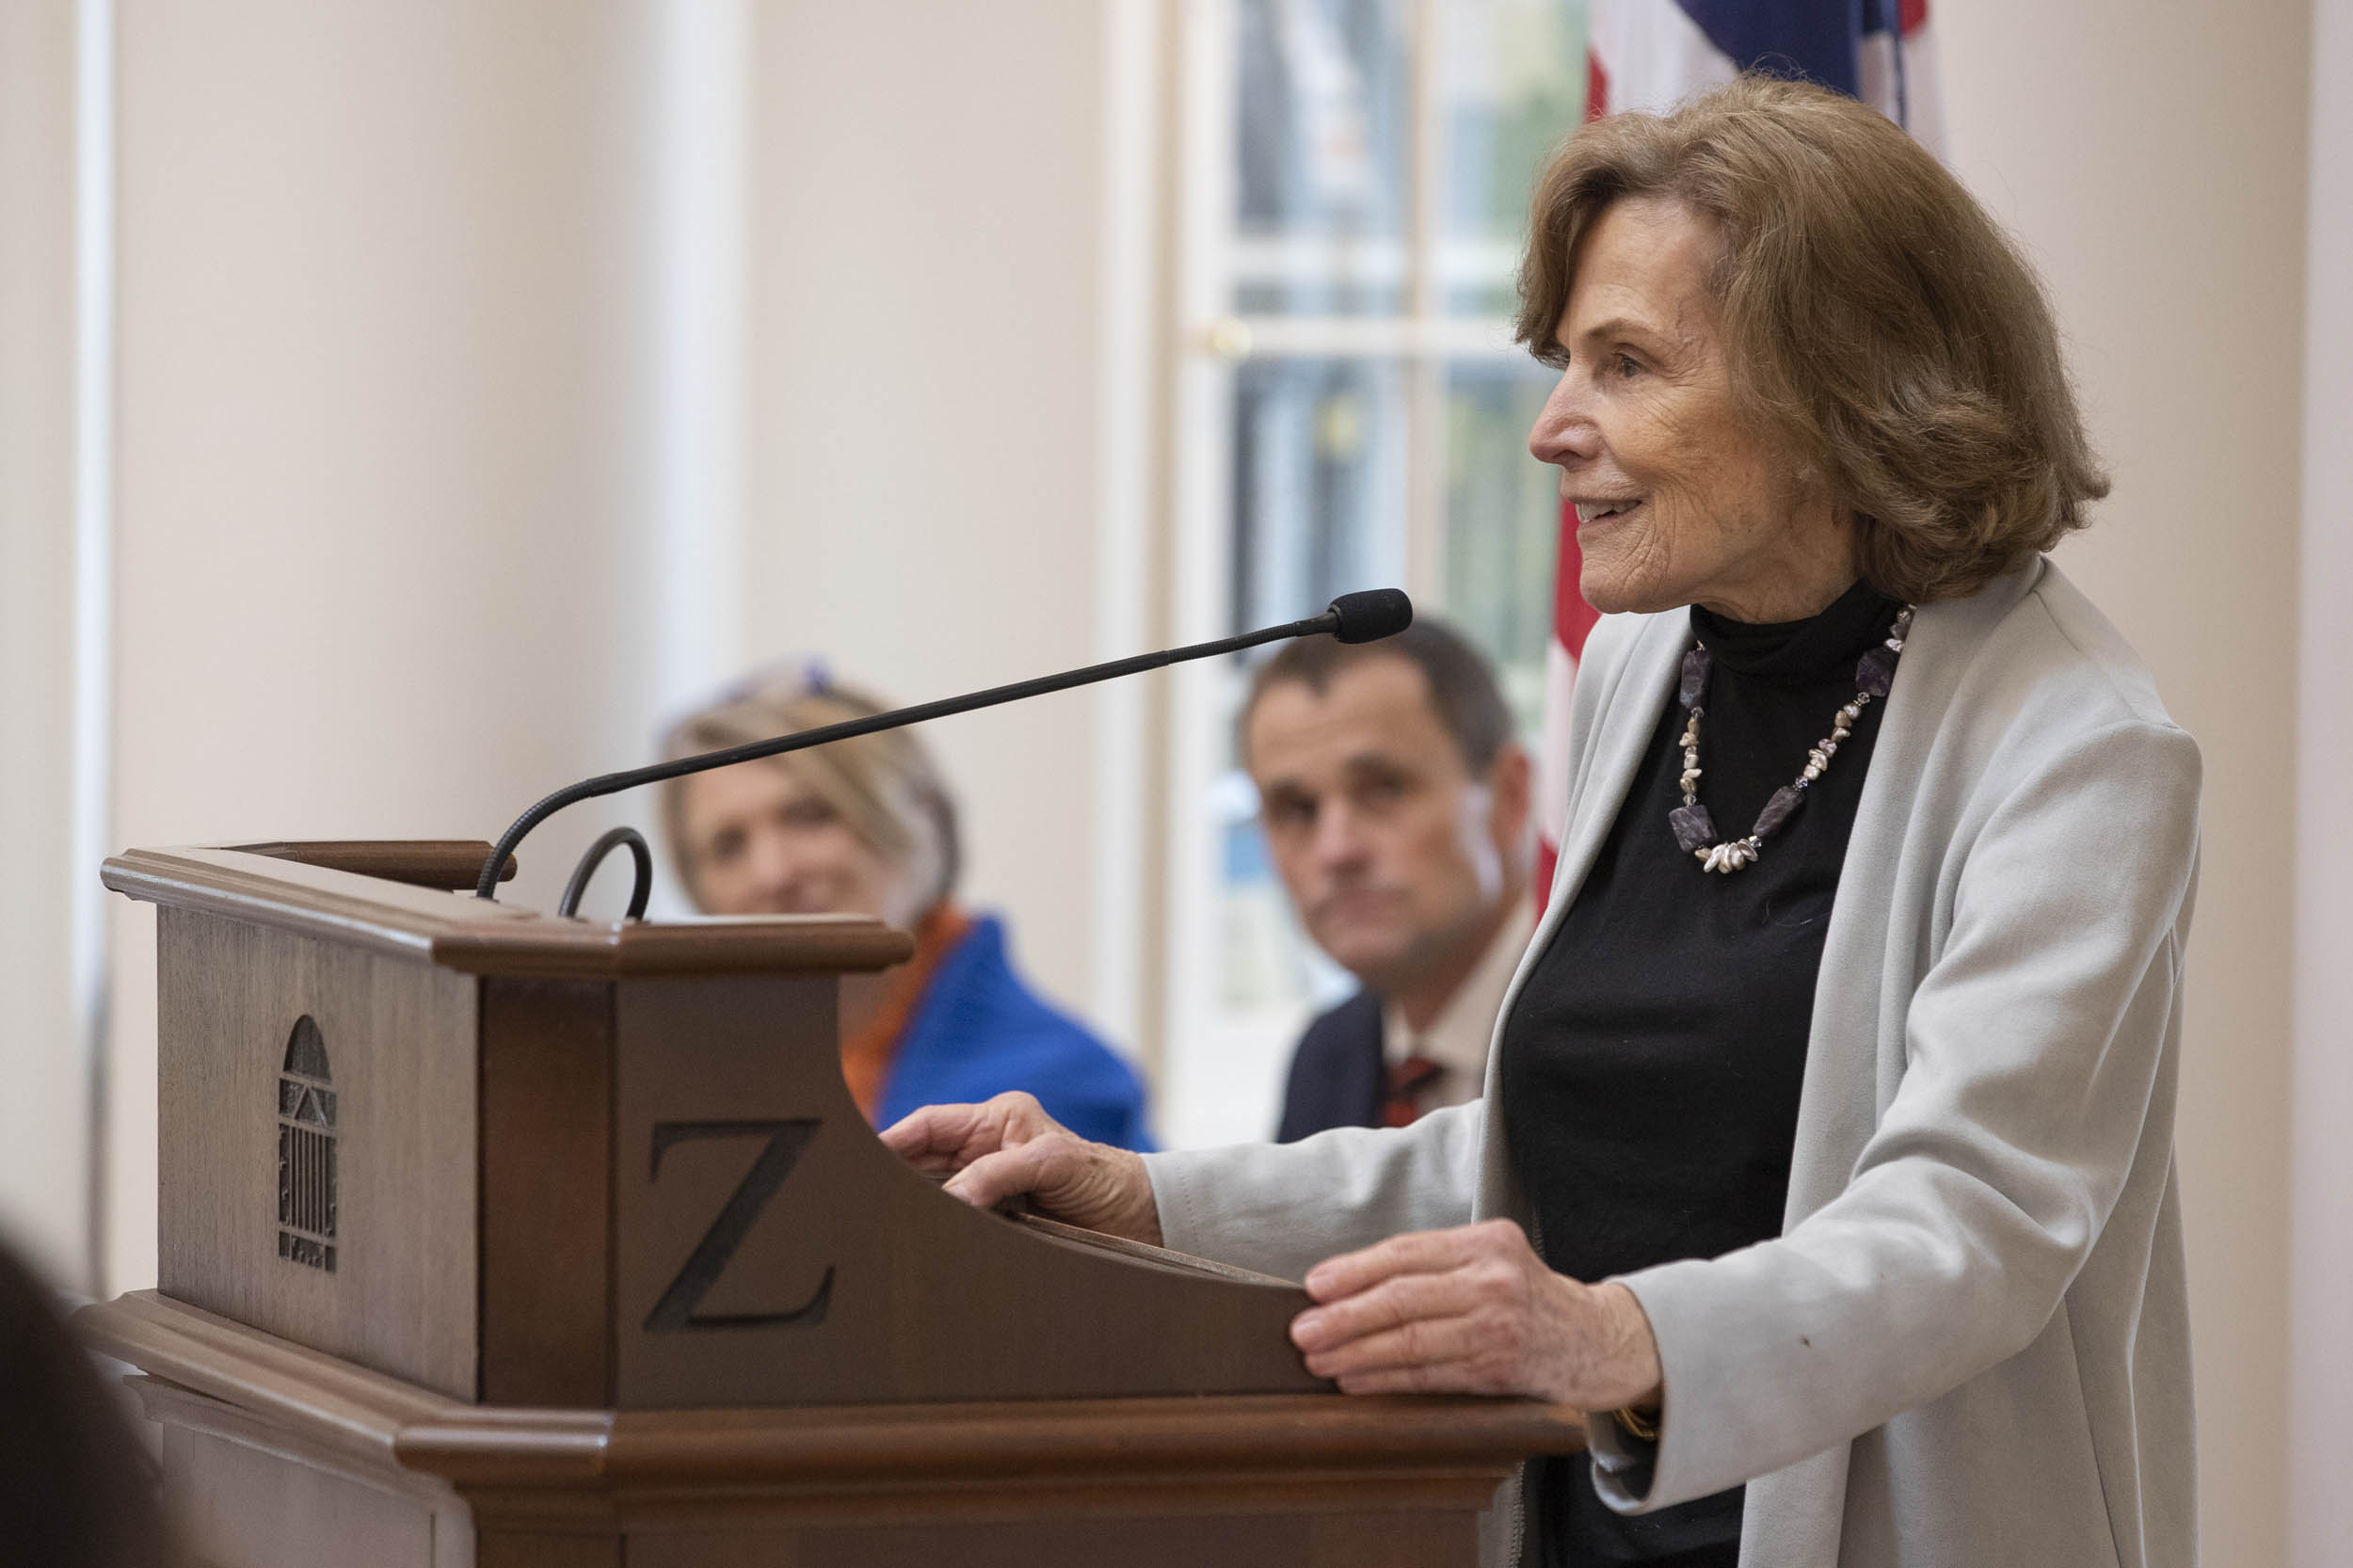 Sylvia Earle accepted the medal during a lunch at the Rotunda Dome Room on Friday.